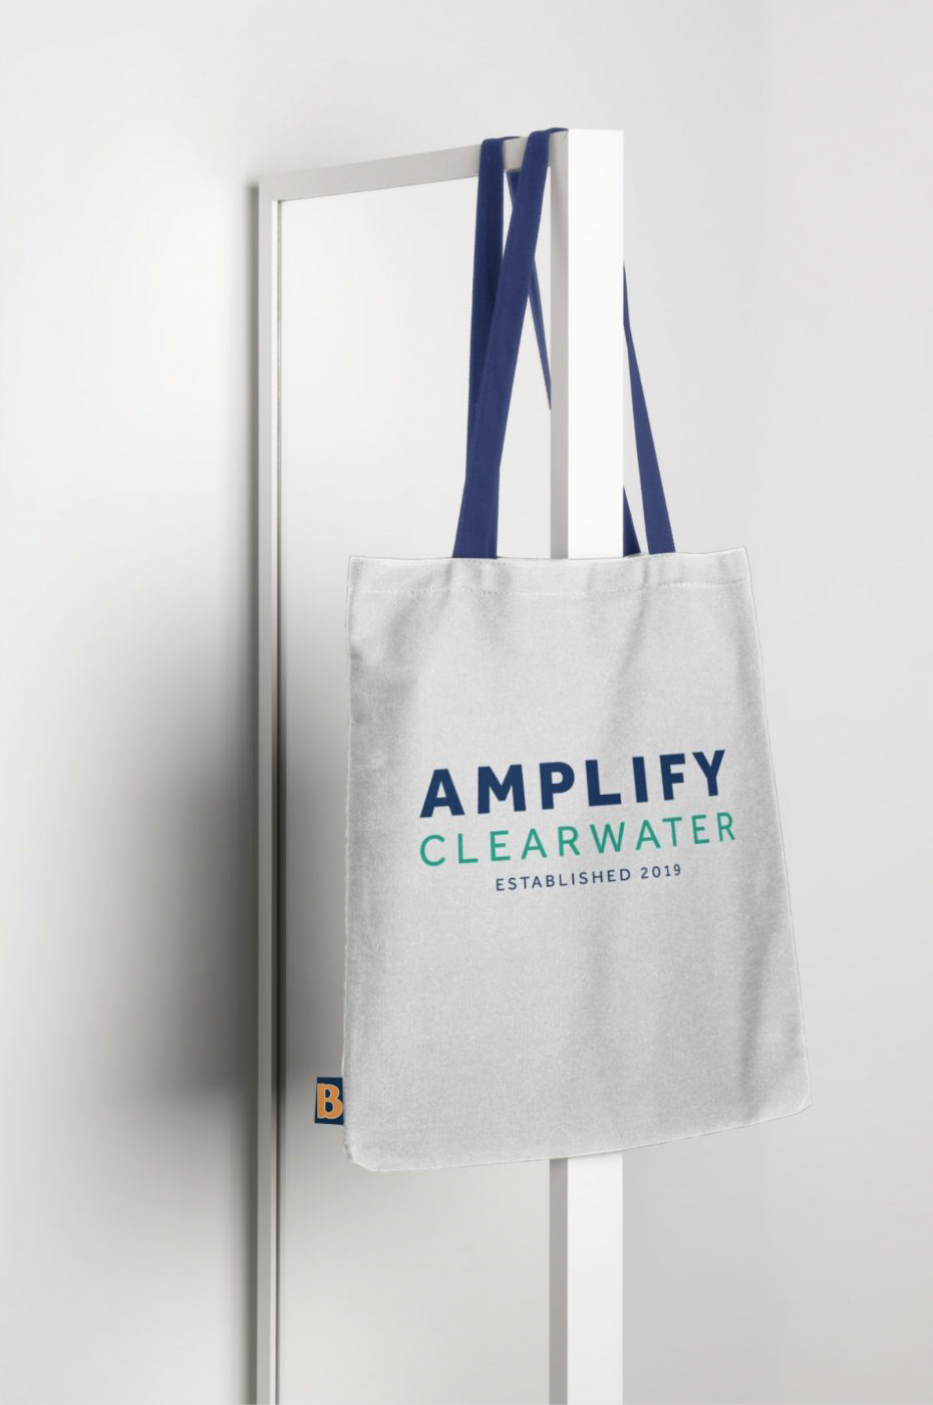 amplify-clearwater-tote-bag-omng5bisrzaiigi3wlvdrsavhwwz02nfkuq76elngg